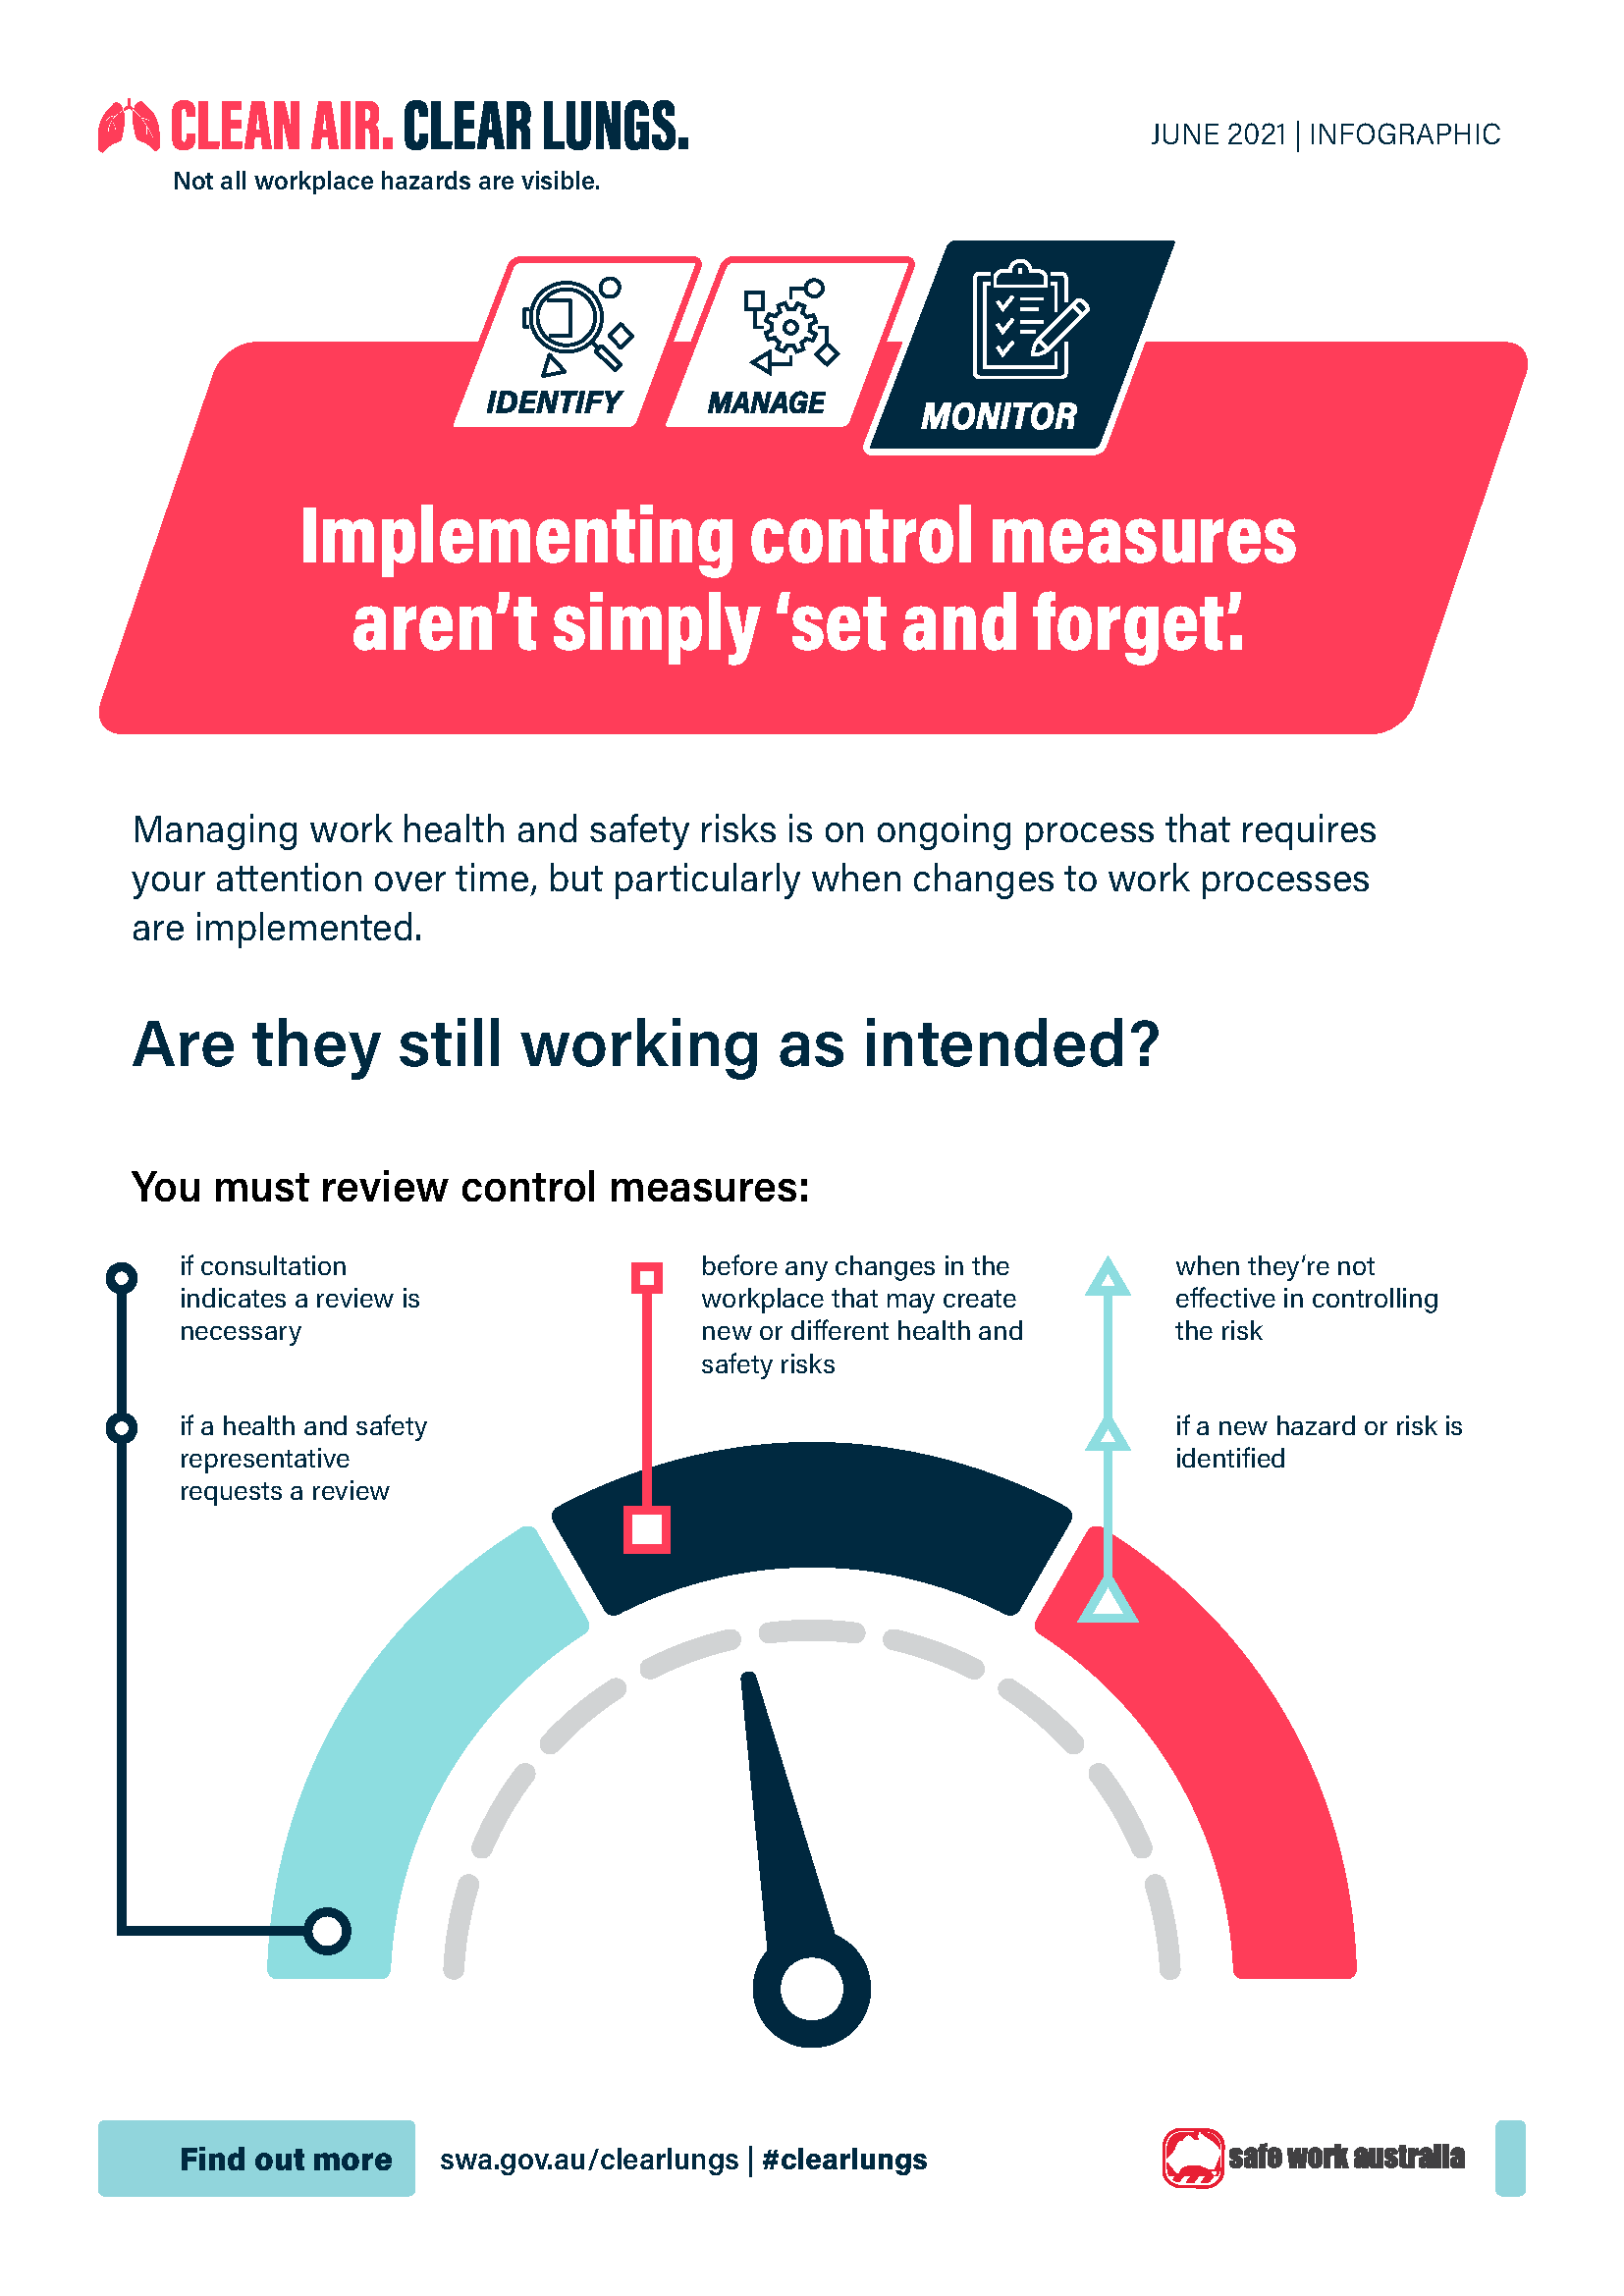 CACL_infographic_Monitor-review